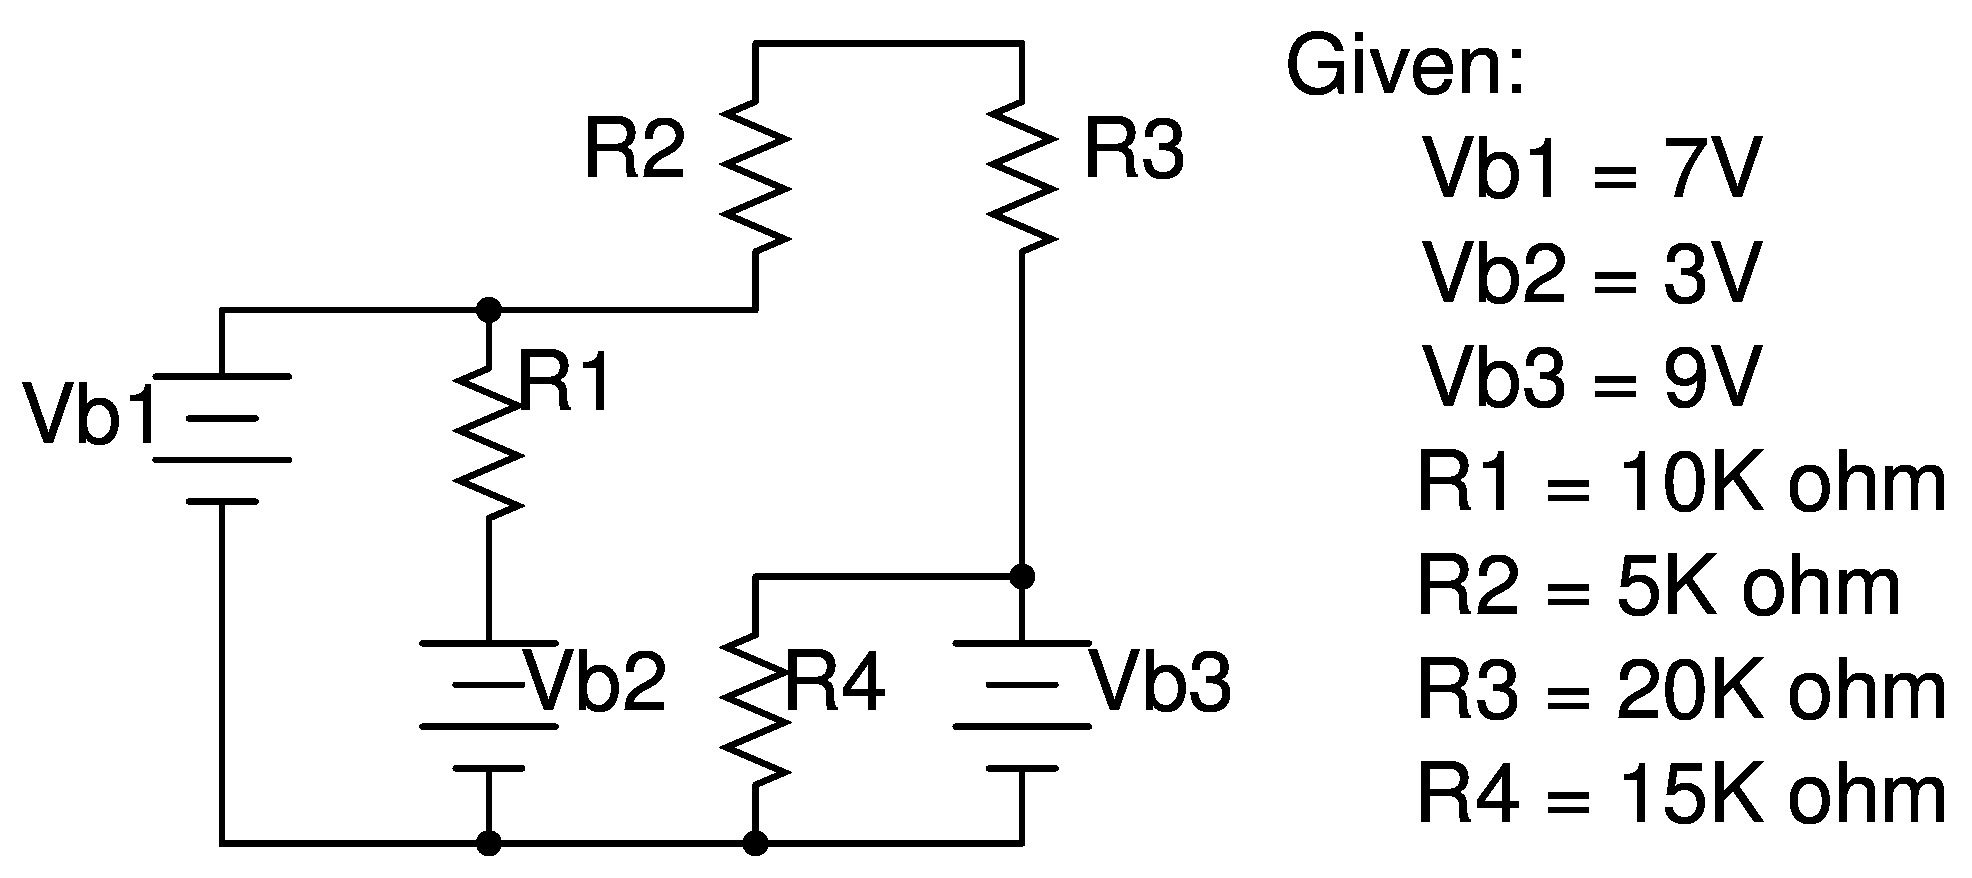 zg_3781] series parallel circuit diagram excercise download diagram  arch mang epsy momece papxe mohammedshrine librar wiring 101